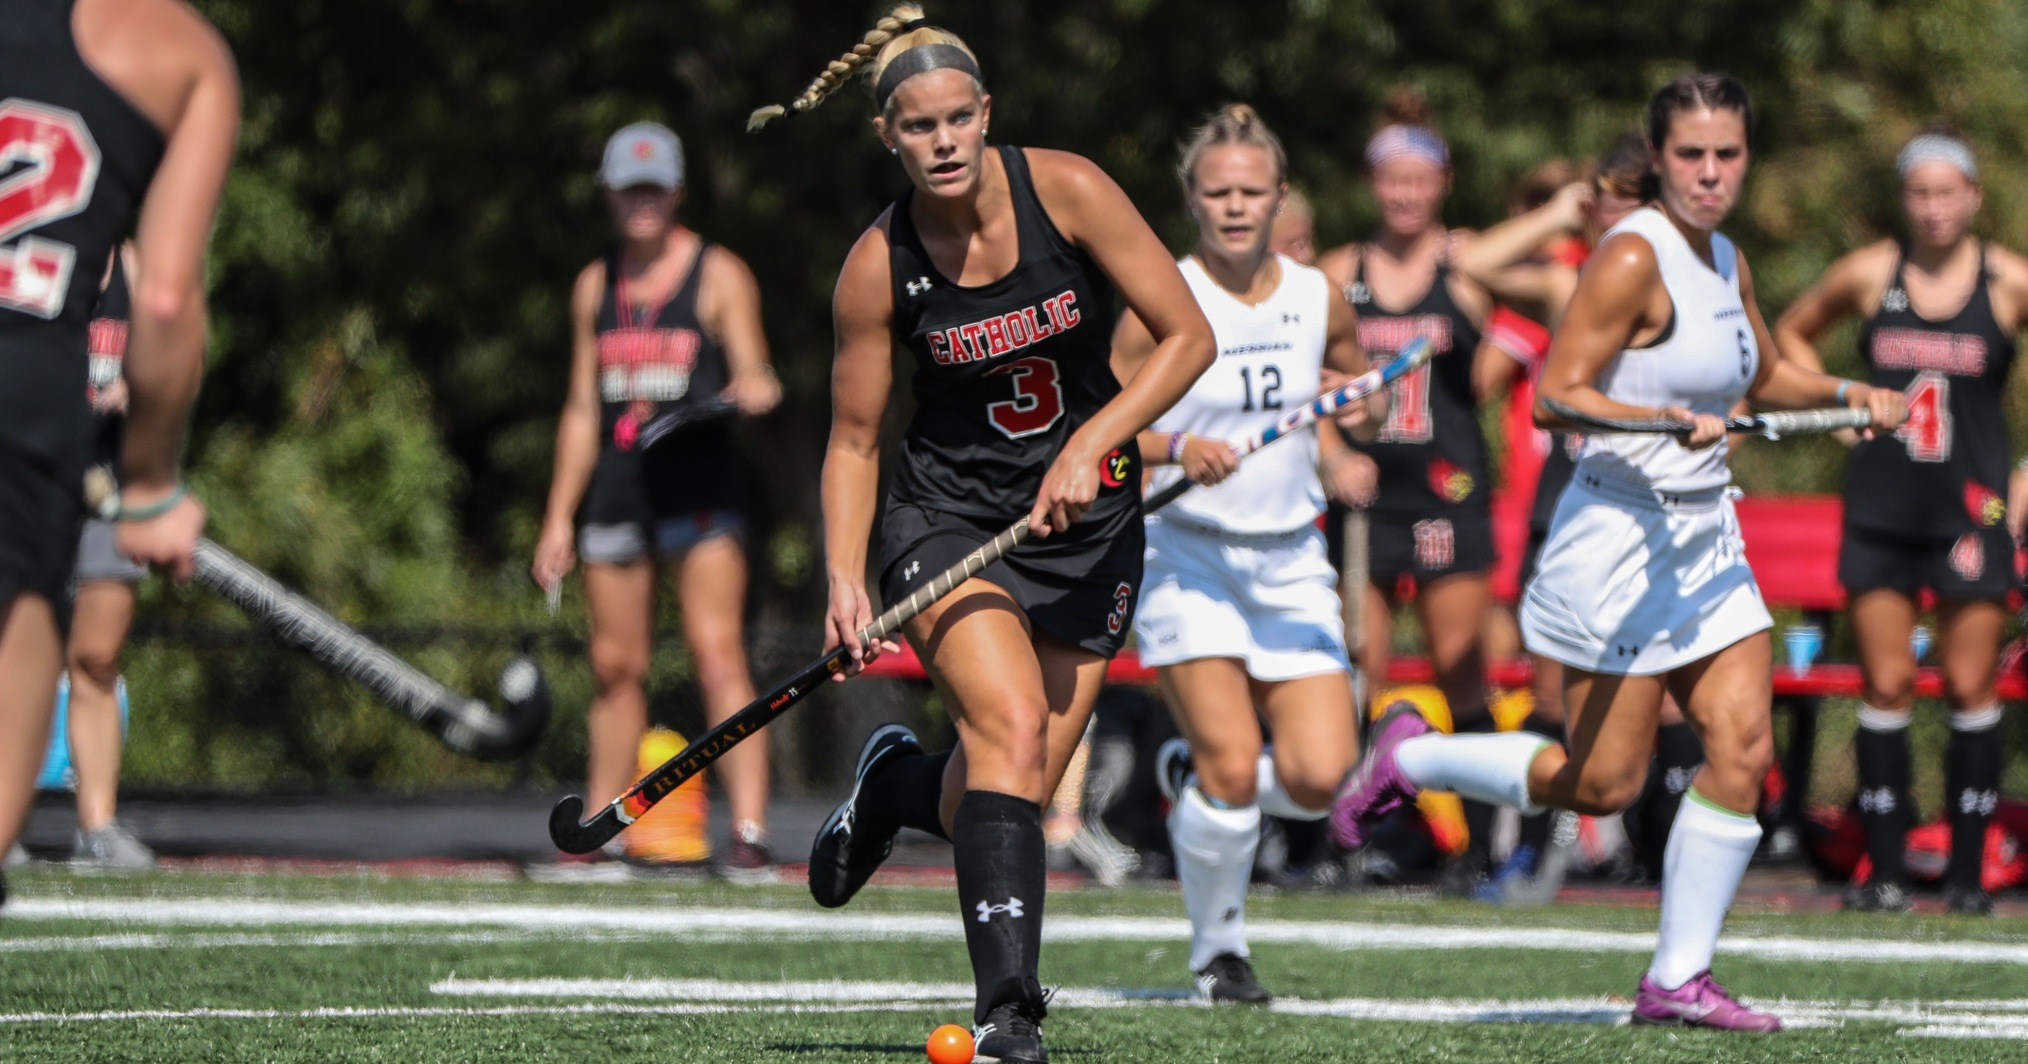 Anderson's Hat Trick Lifts Catholic Past Goucher, 8-0